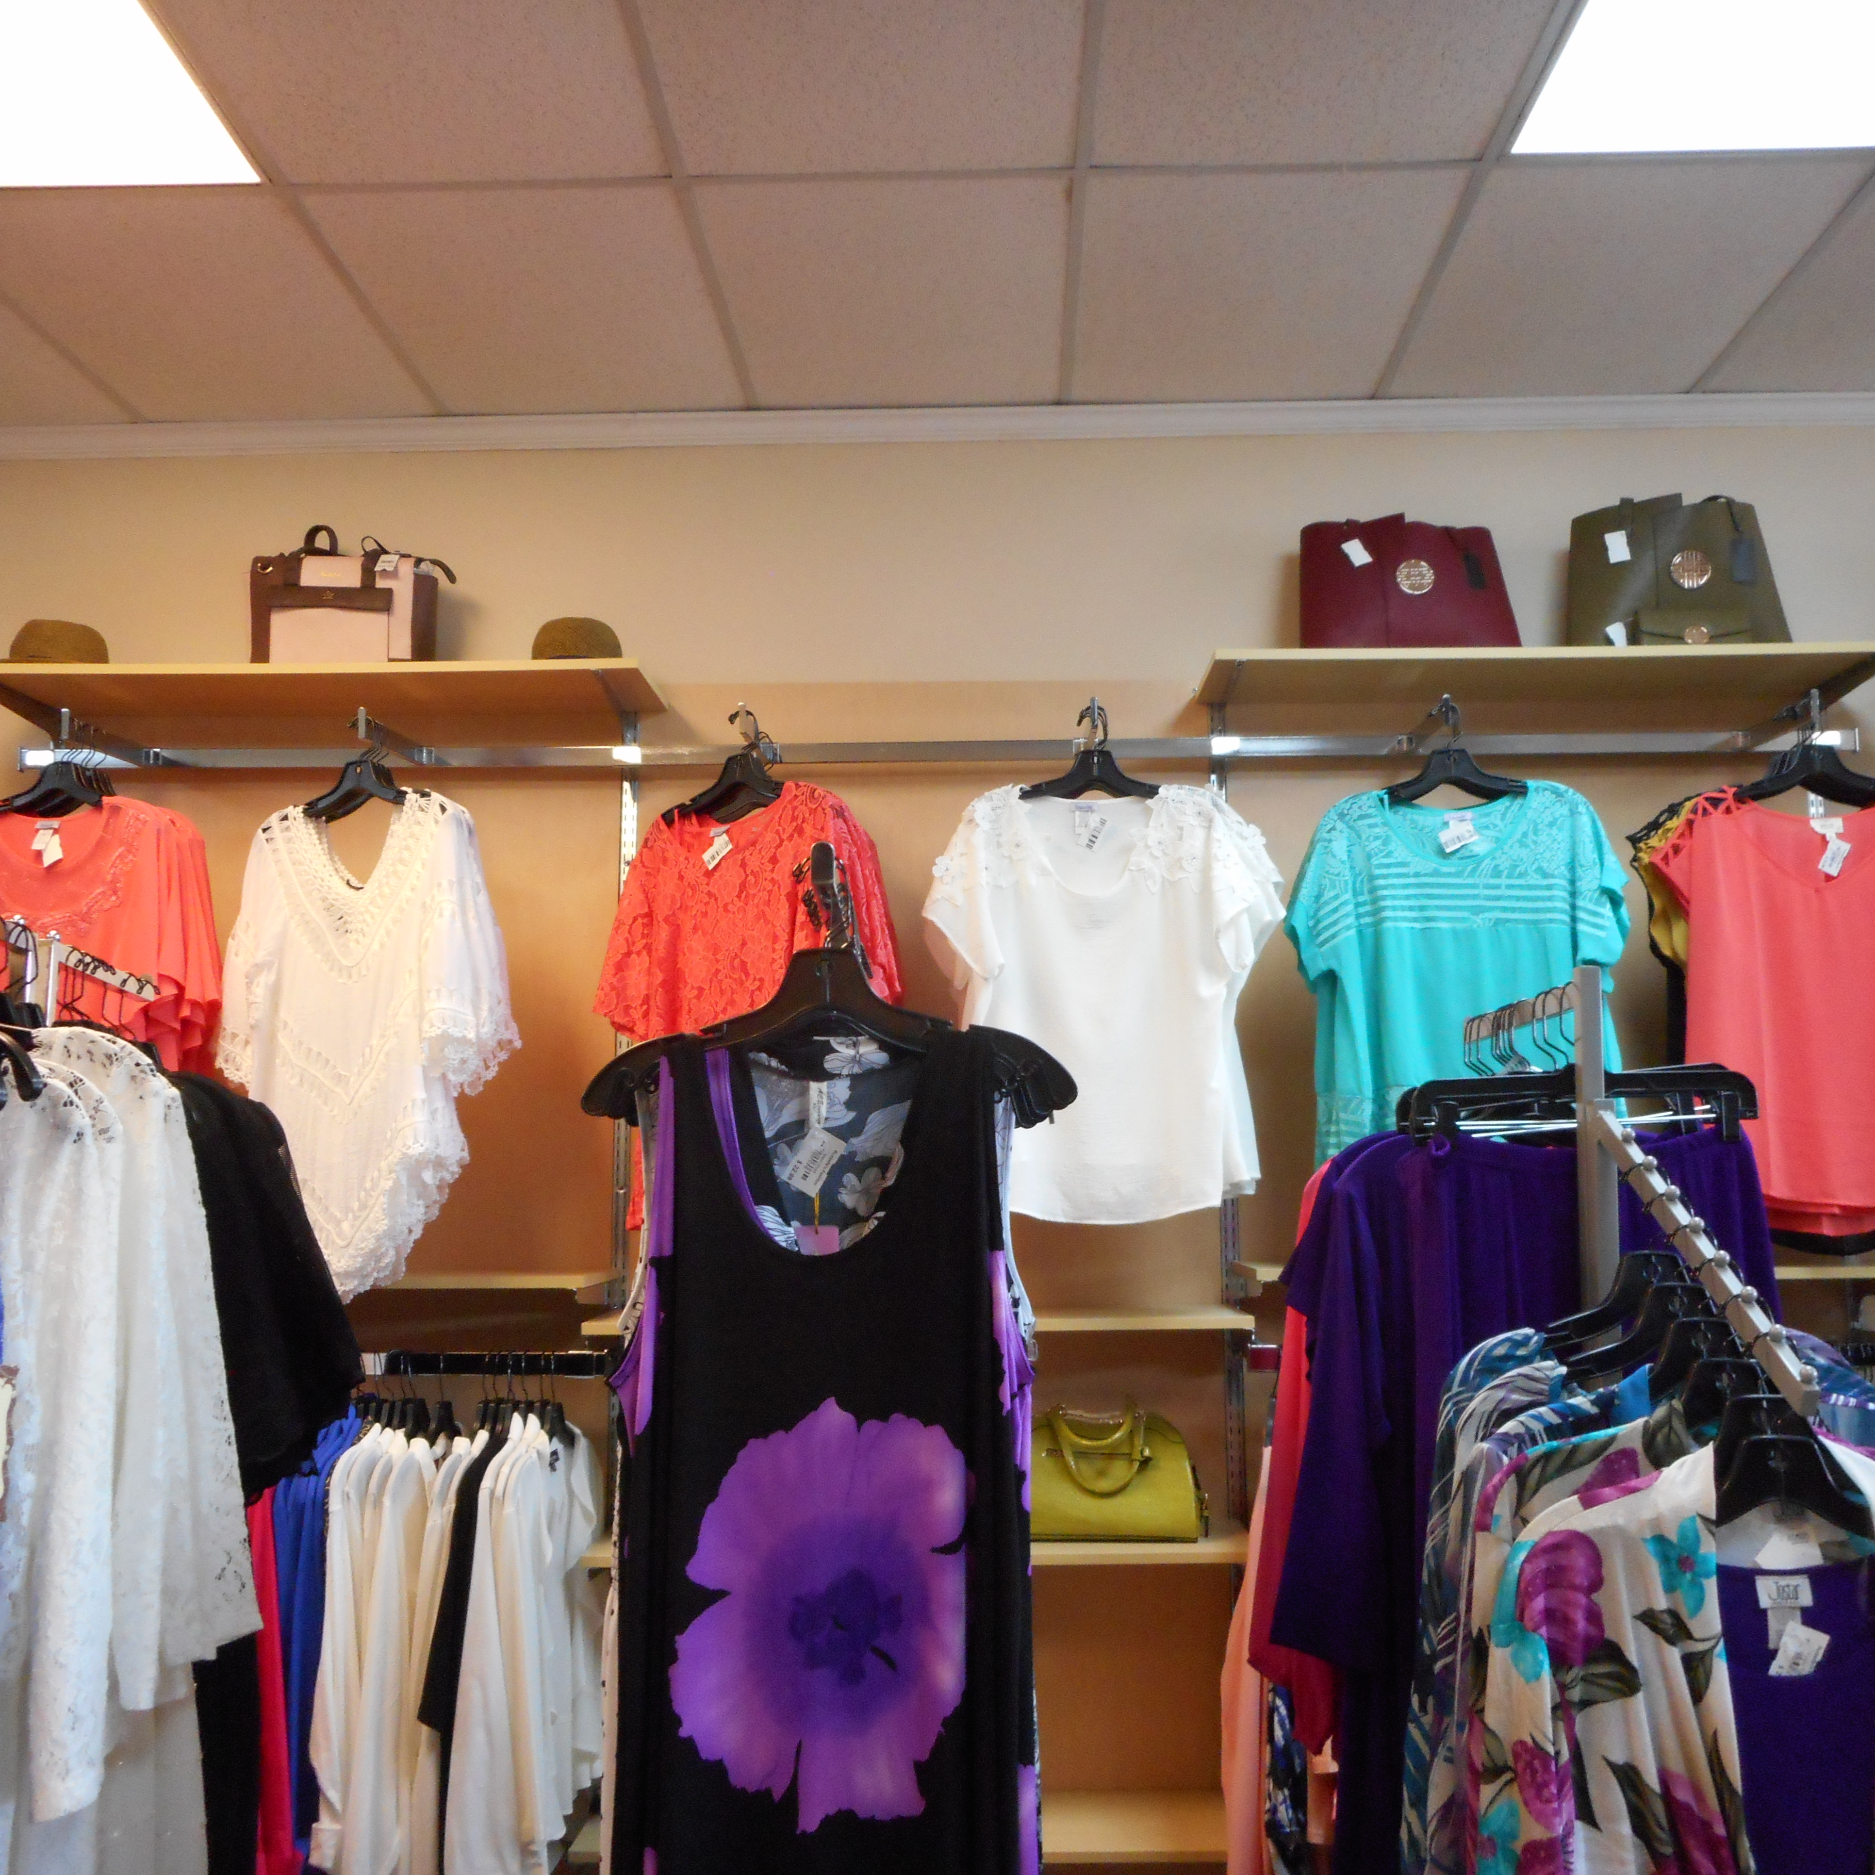 Rozzelles Fashion & Accessories in South Carolina